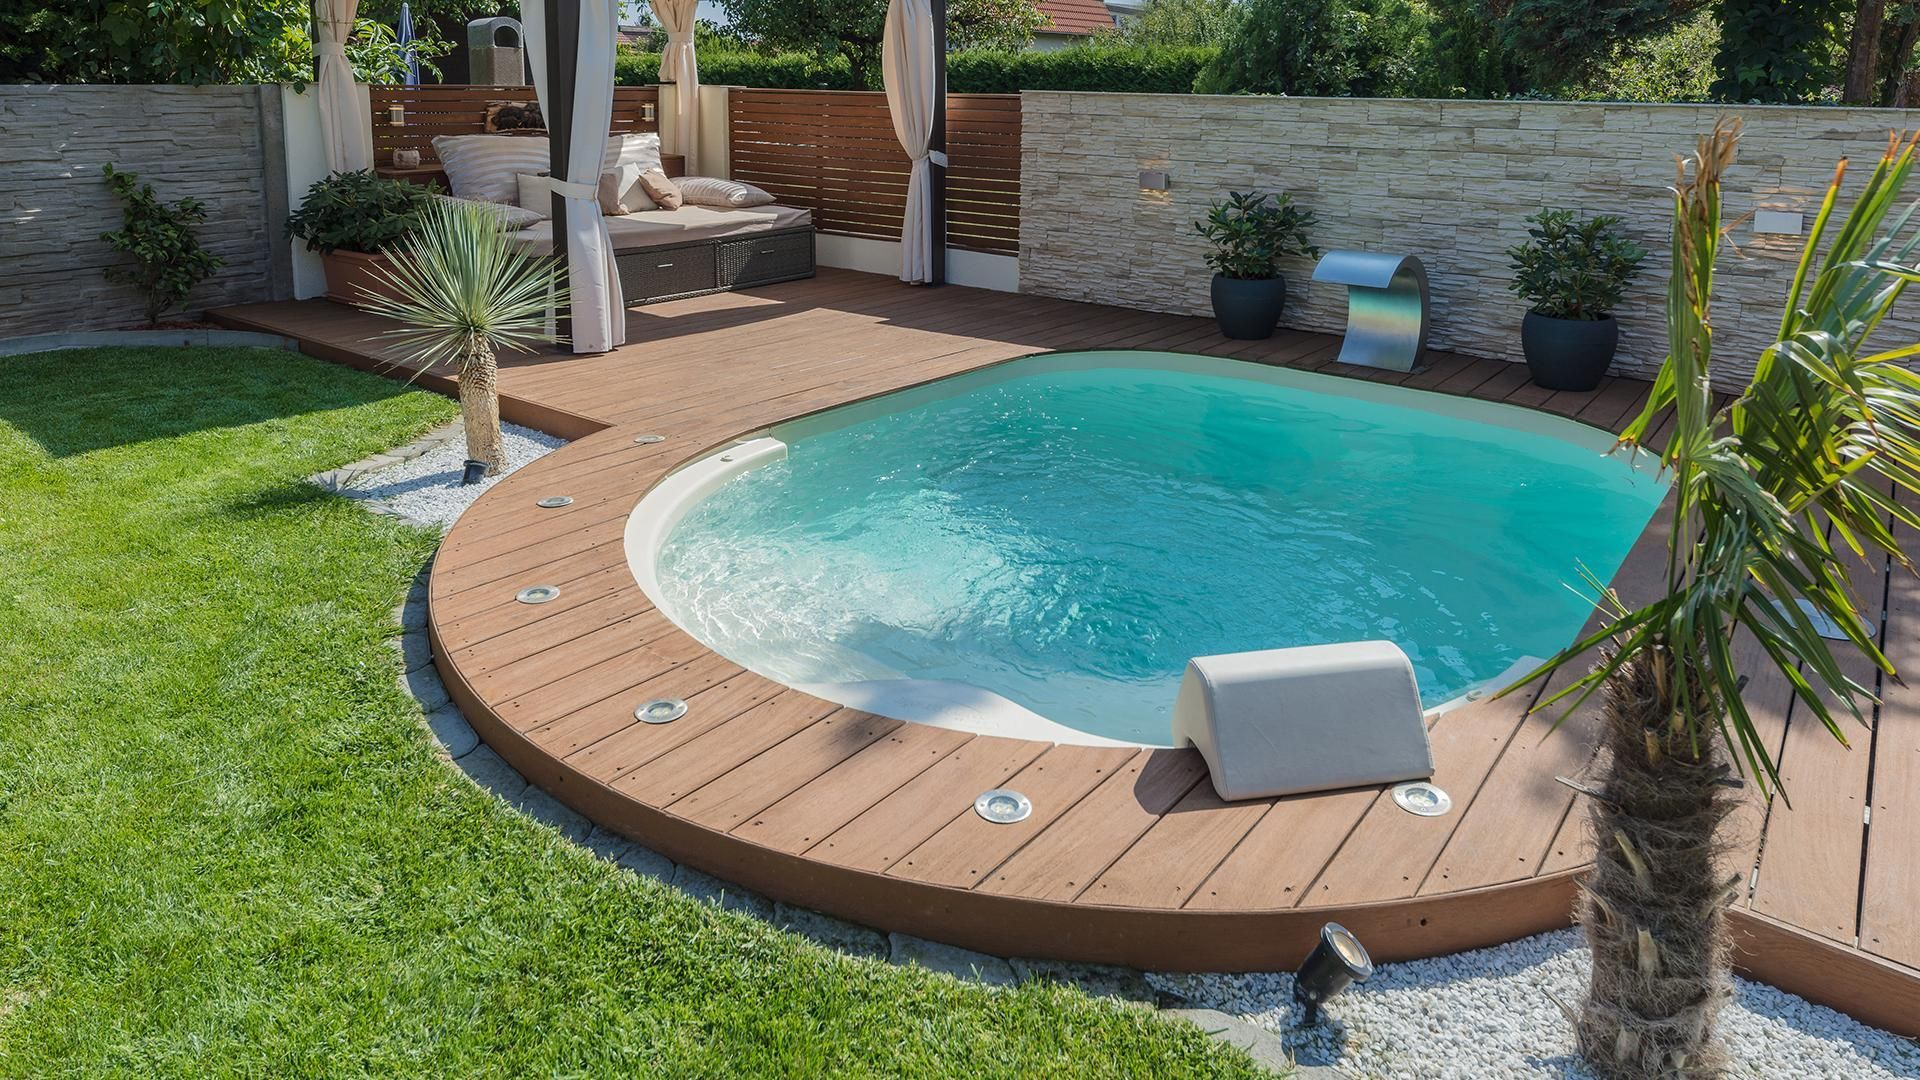 36 Beautiful Mini Pool Garden Designs For Tiny House Pool Pooldesigns Poollandscaping Small Pool Design Small Backyard Pools Backyard Pool